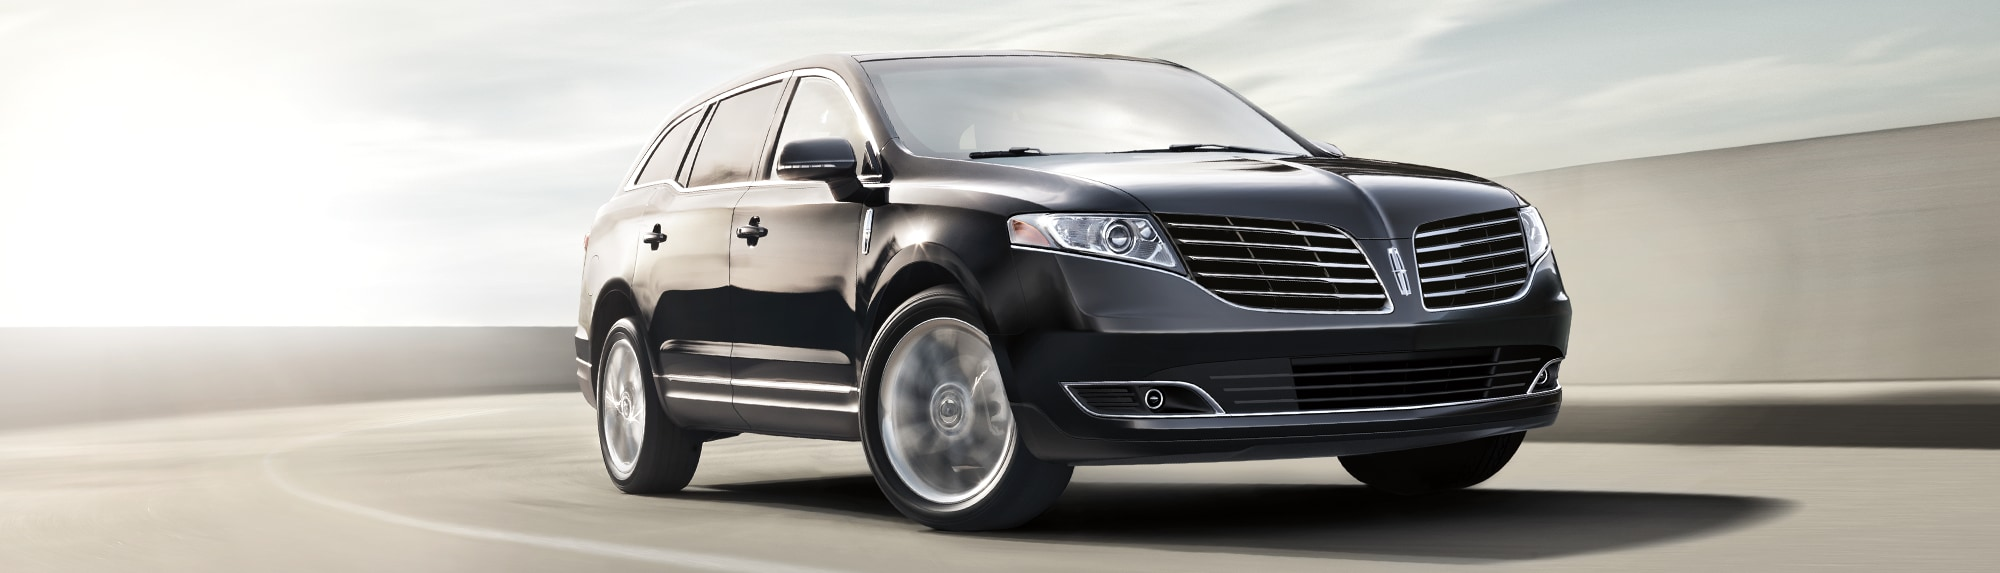 lincoln new mkt models crowley